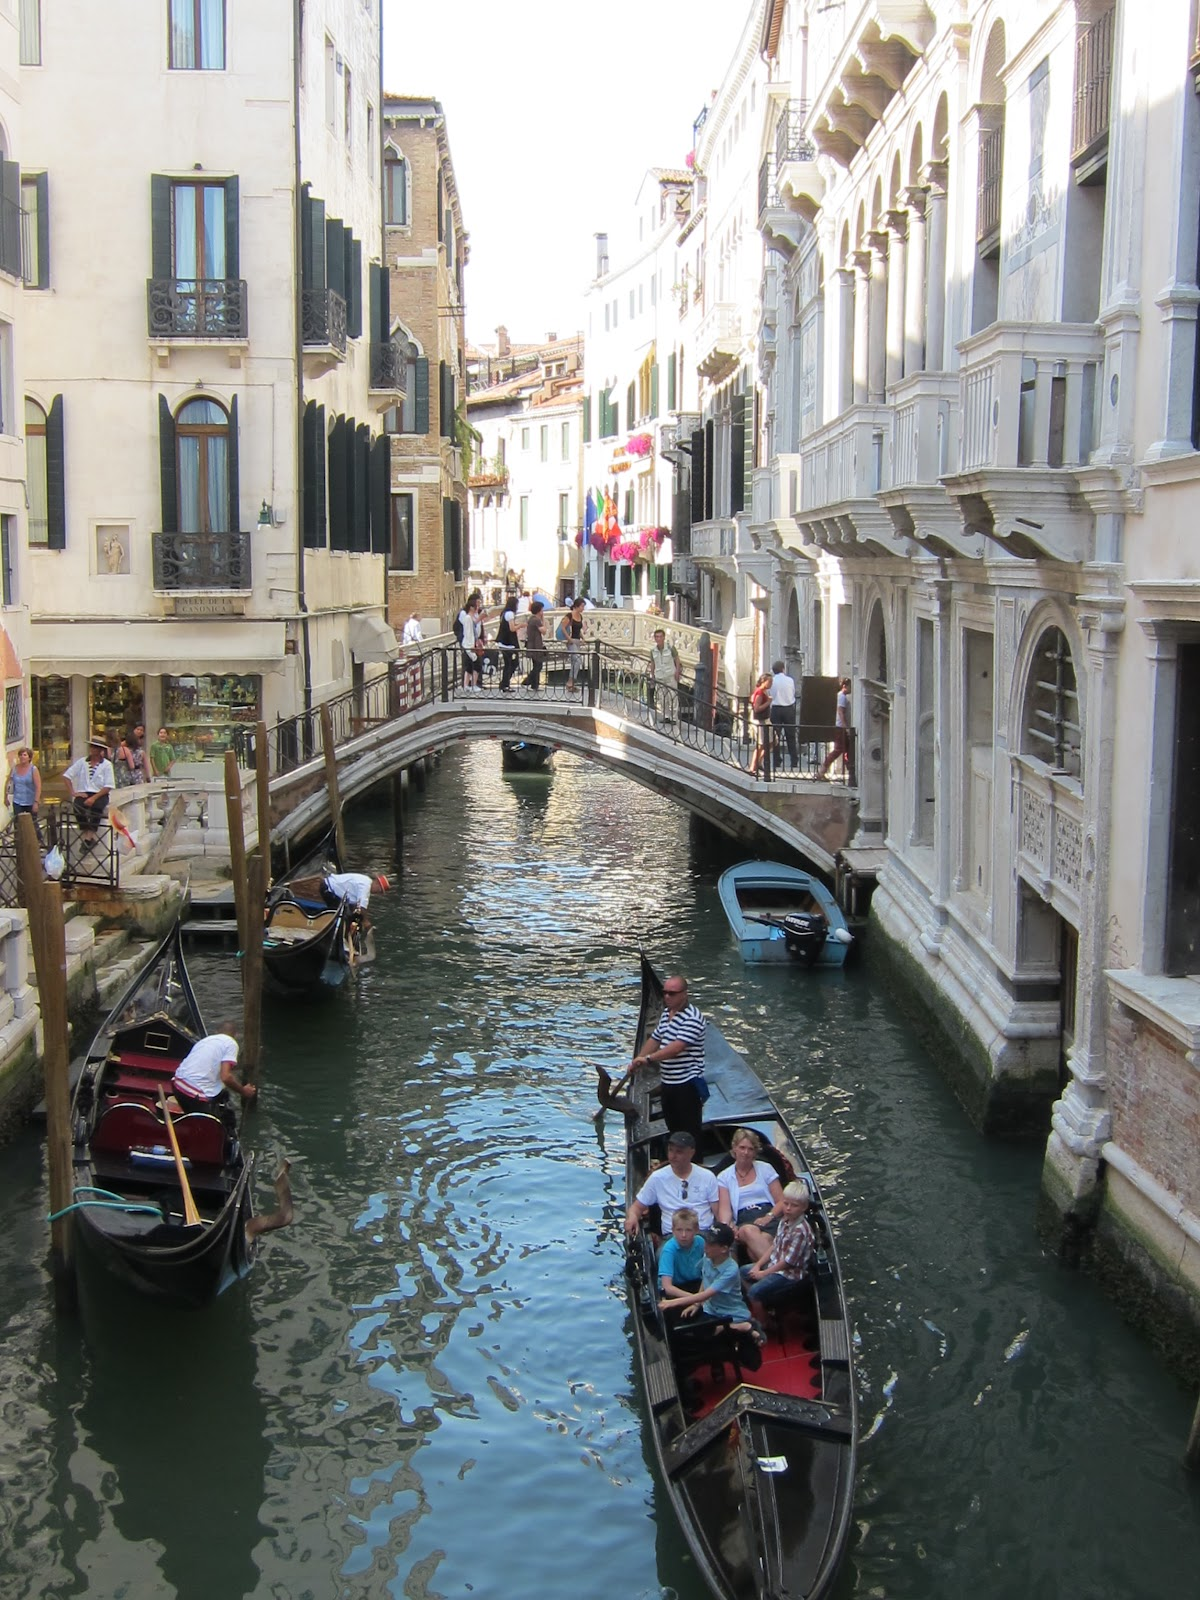 Venice Full Face Black Mirror Mask: Free Full HD Wallpaper صور عالية الجودة : Venice Of The